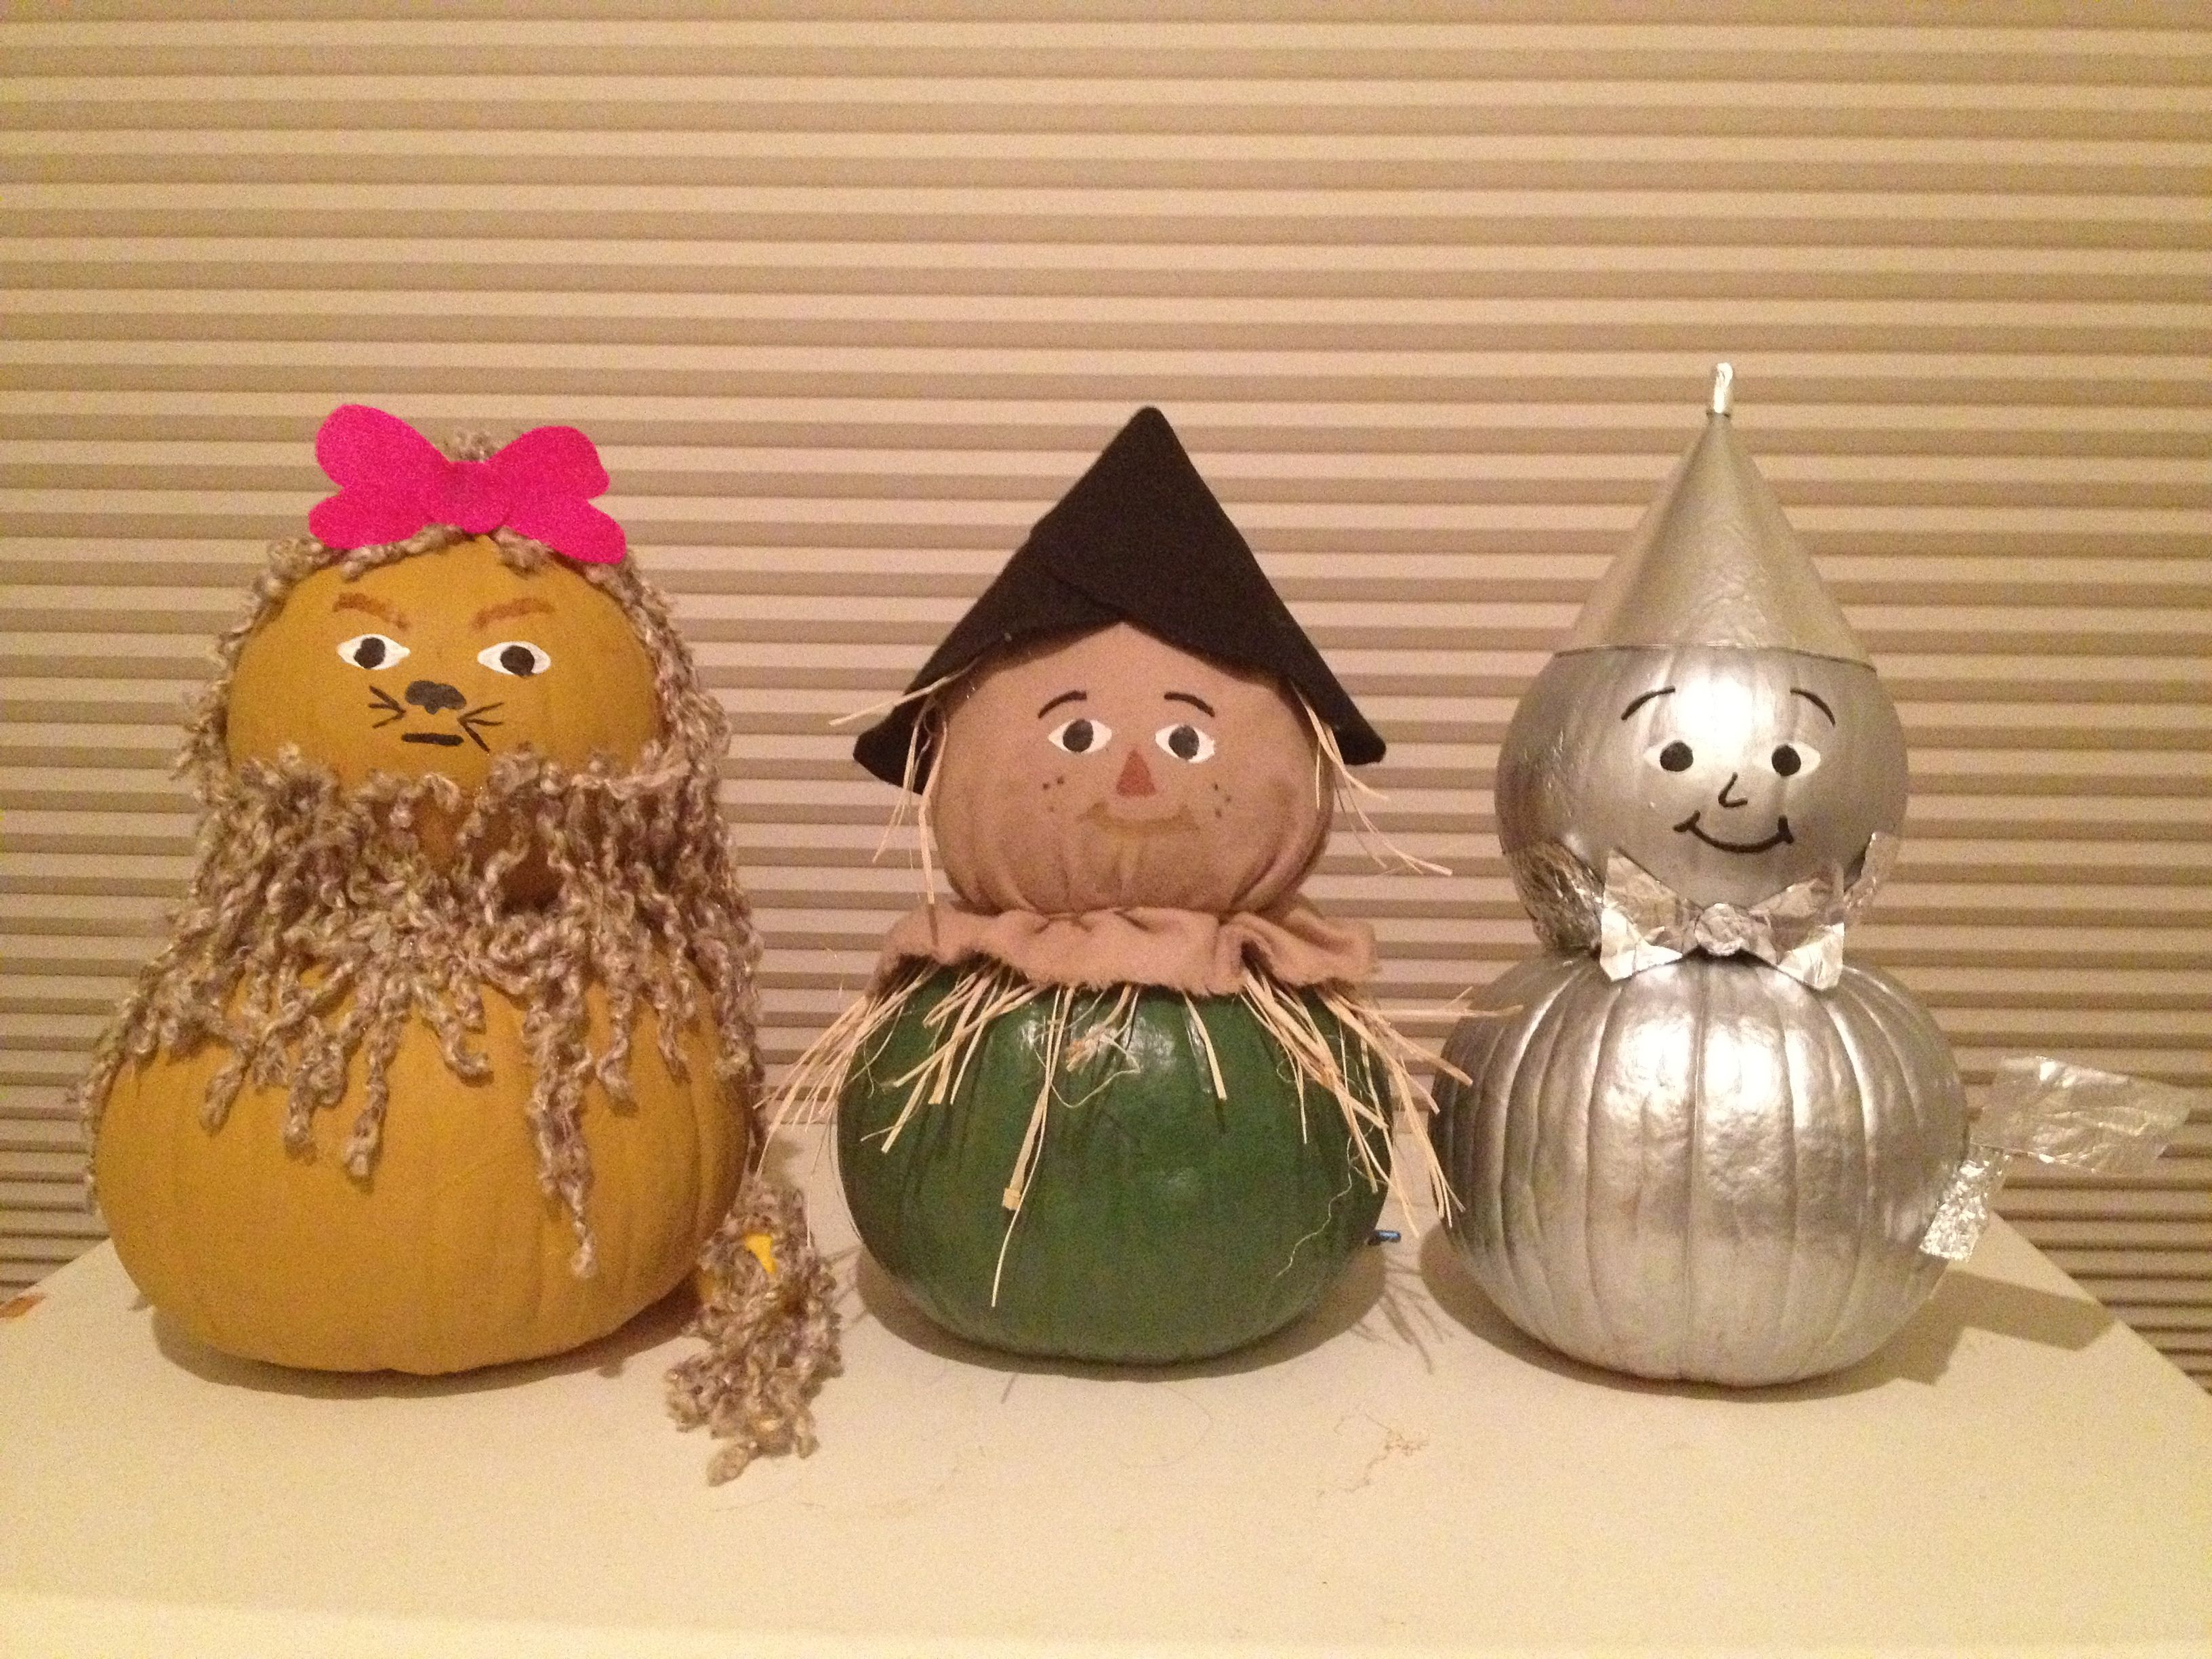 Wizard of oz christmas decorations uk - Wizard Of Oz Pumpkins By Nora Johnson